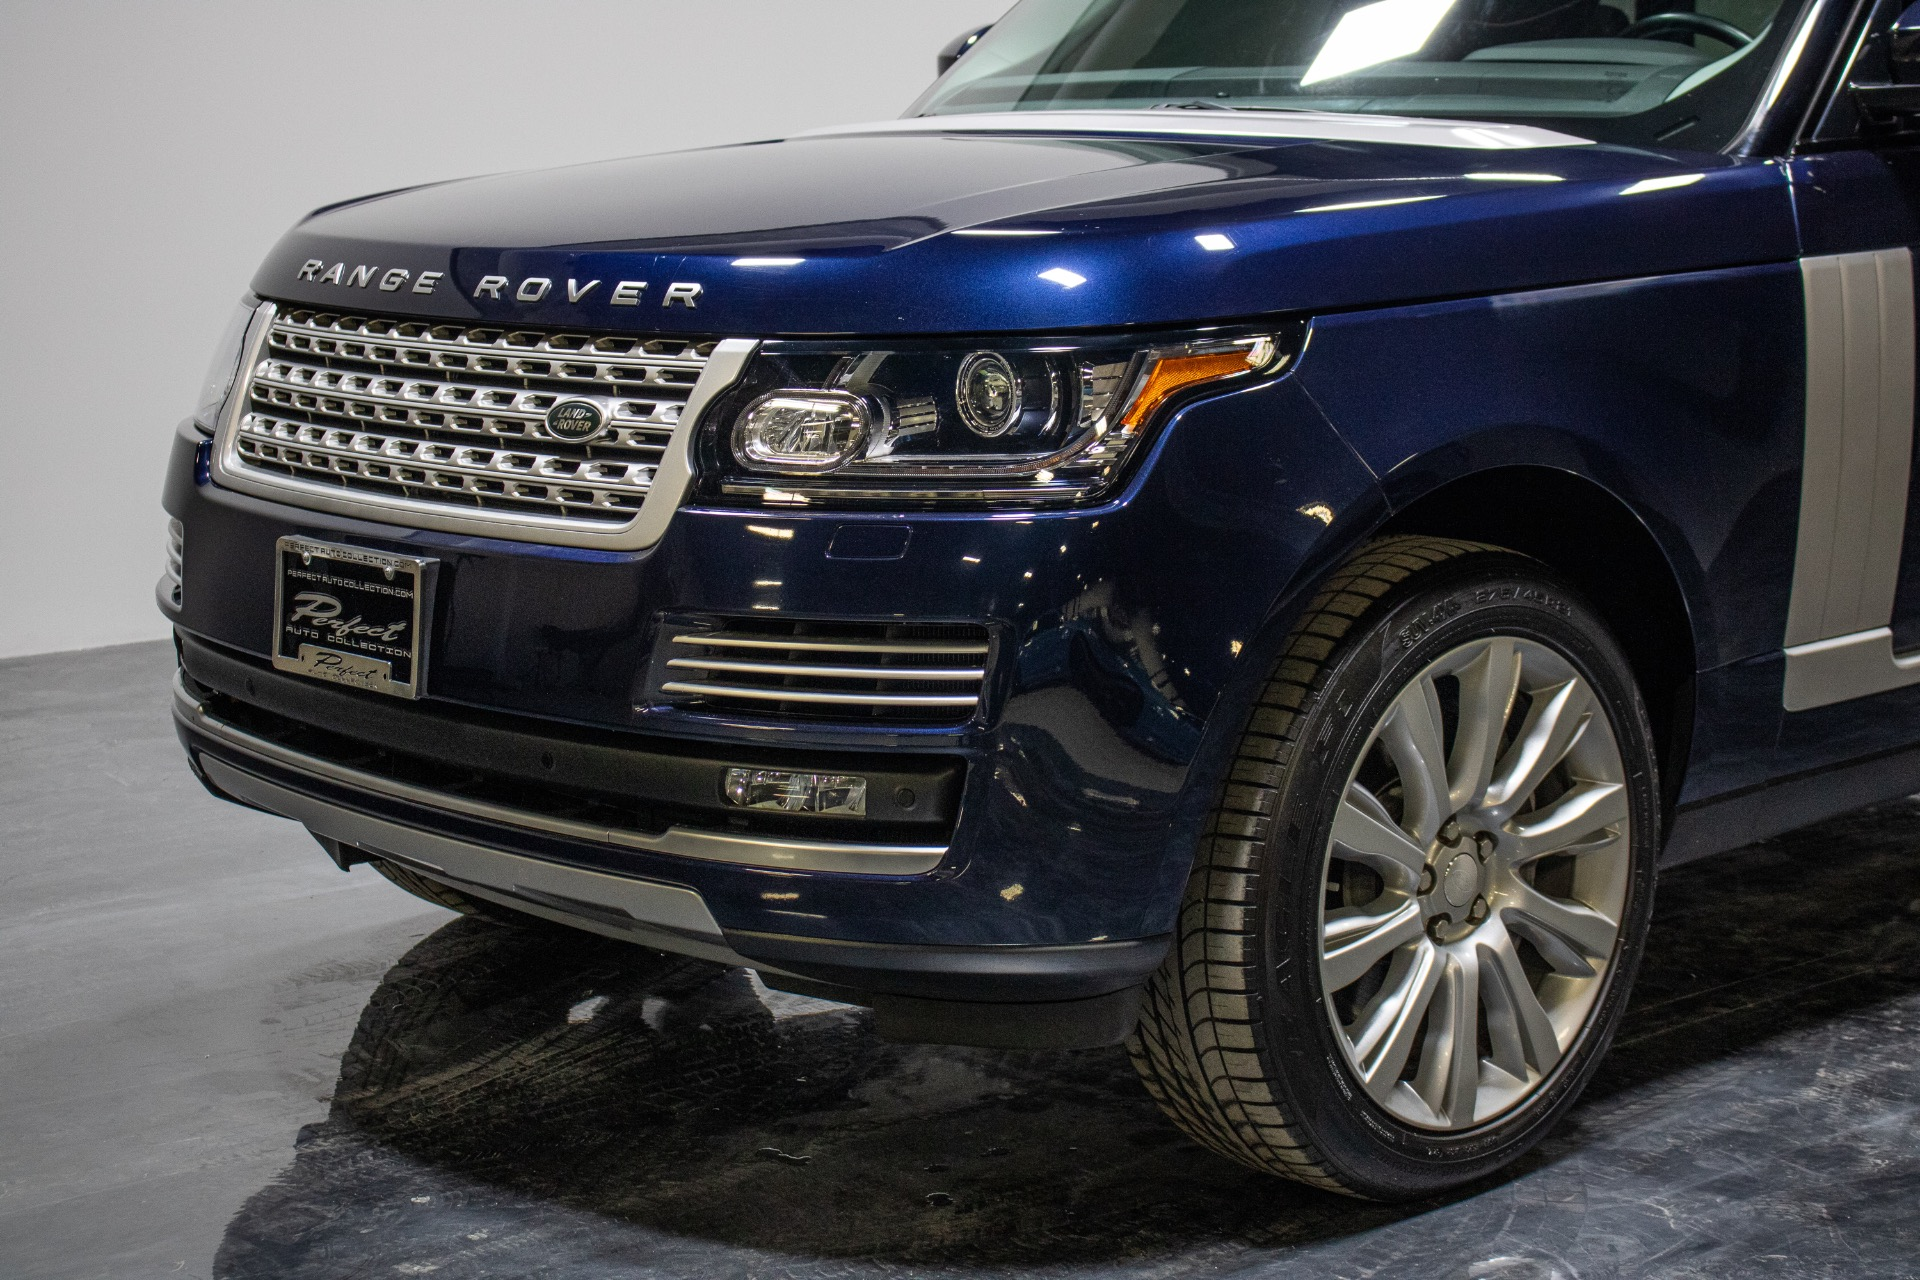 Used 2015 Land Rover Range Rover Supercharged Sport Utility 4D for sale Sold at Perfect Auto Collection in Akron OH 44310 2